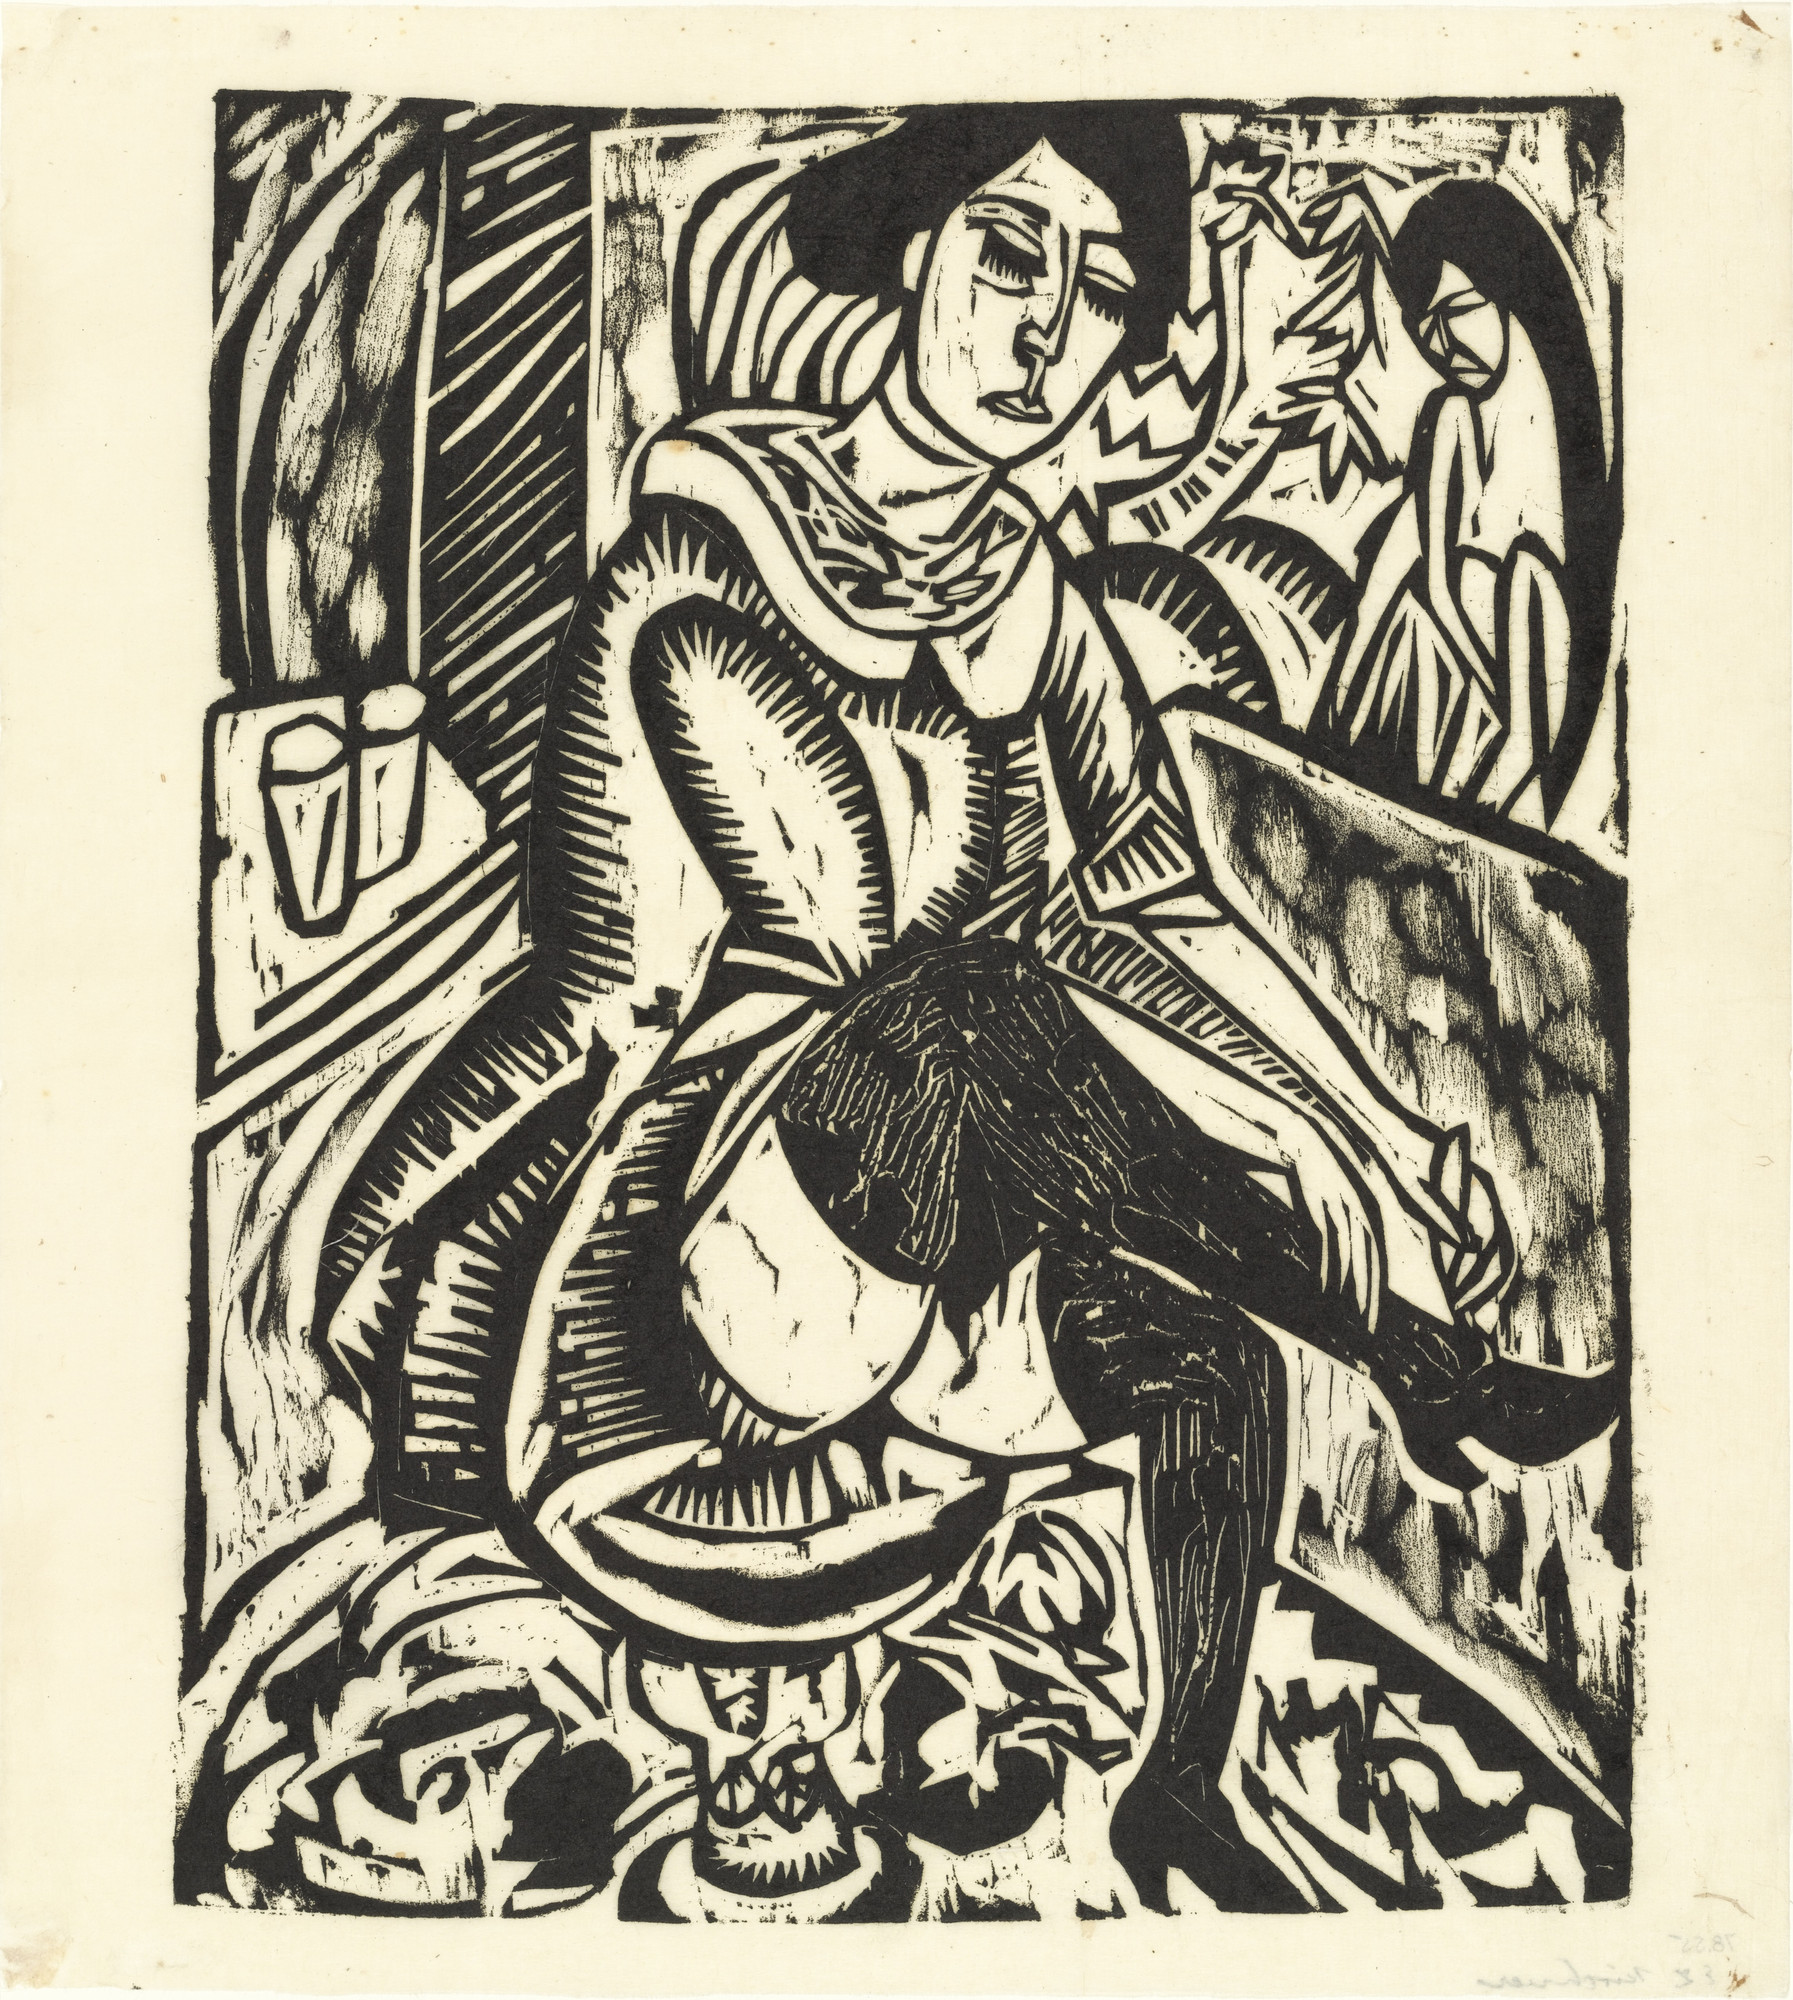 Ernst Ludwig Kirchner. Woman Buttoning Her Shoe (Frau, Schuh zuknöpfend). (1912, published 1913)